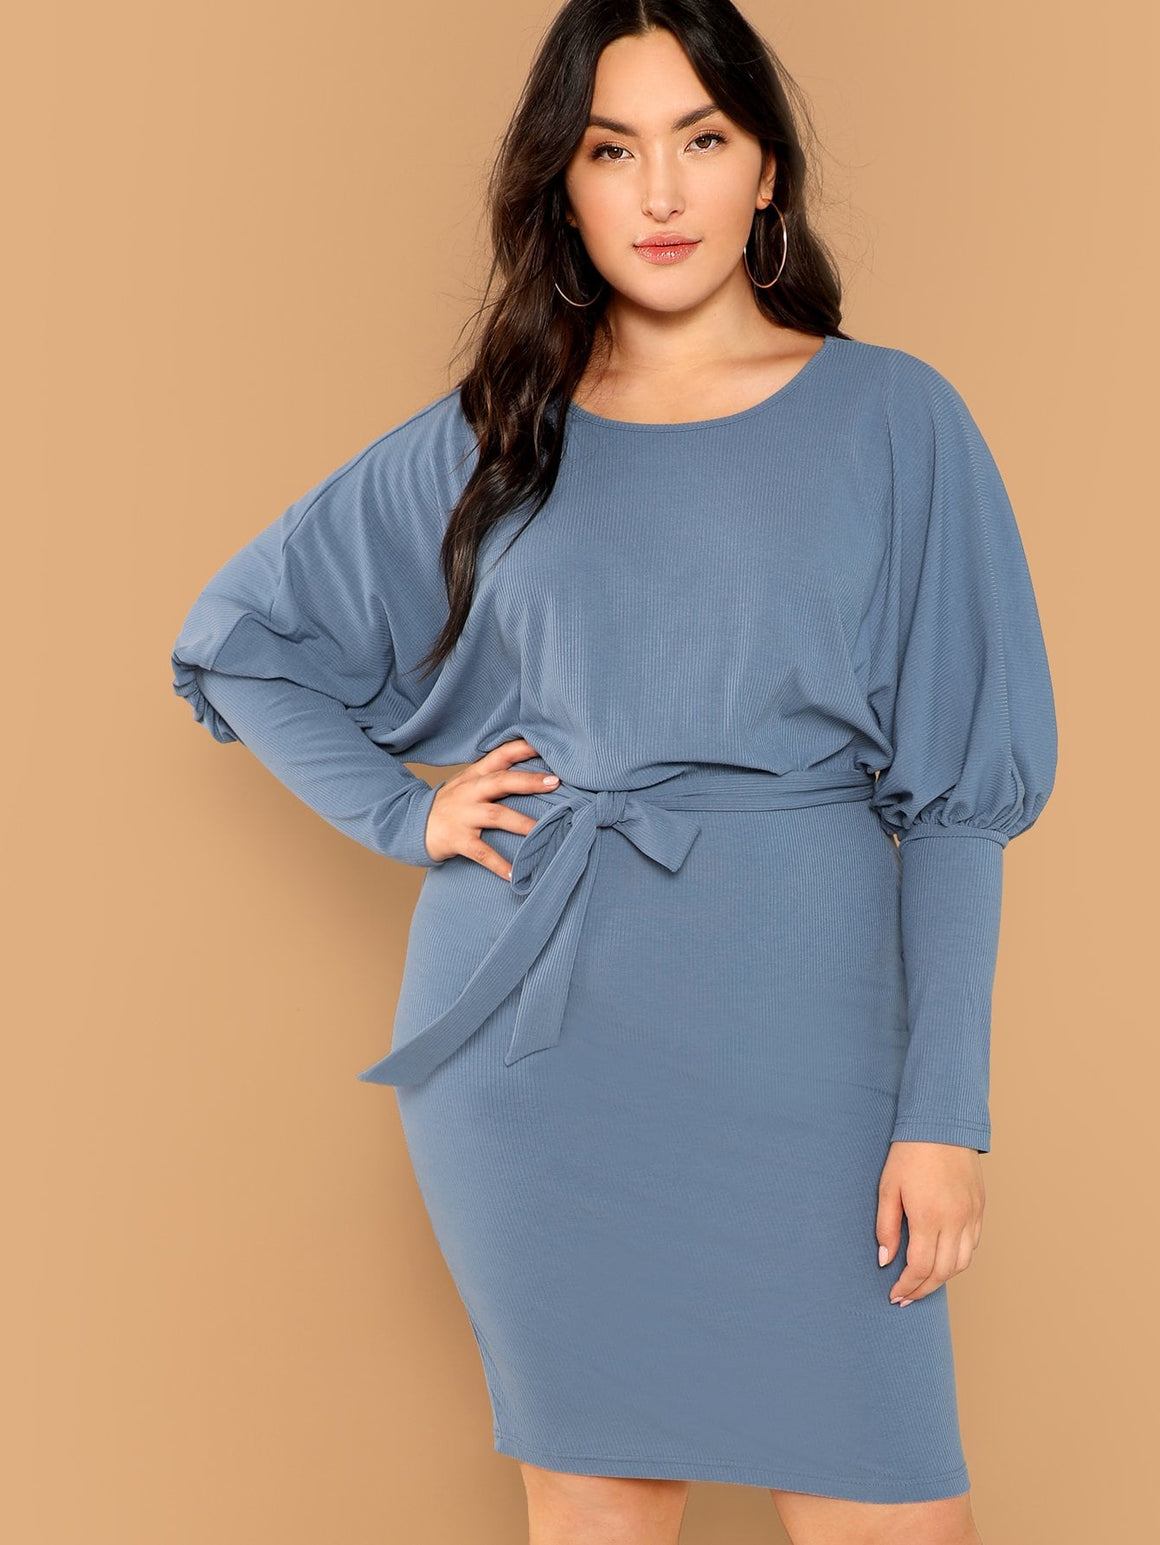 Gigot Sleeve Pencil Dress